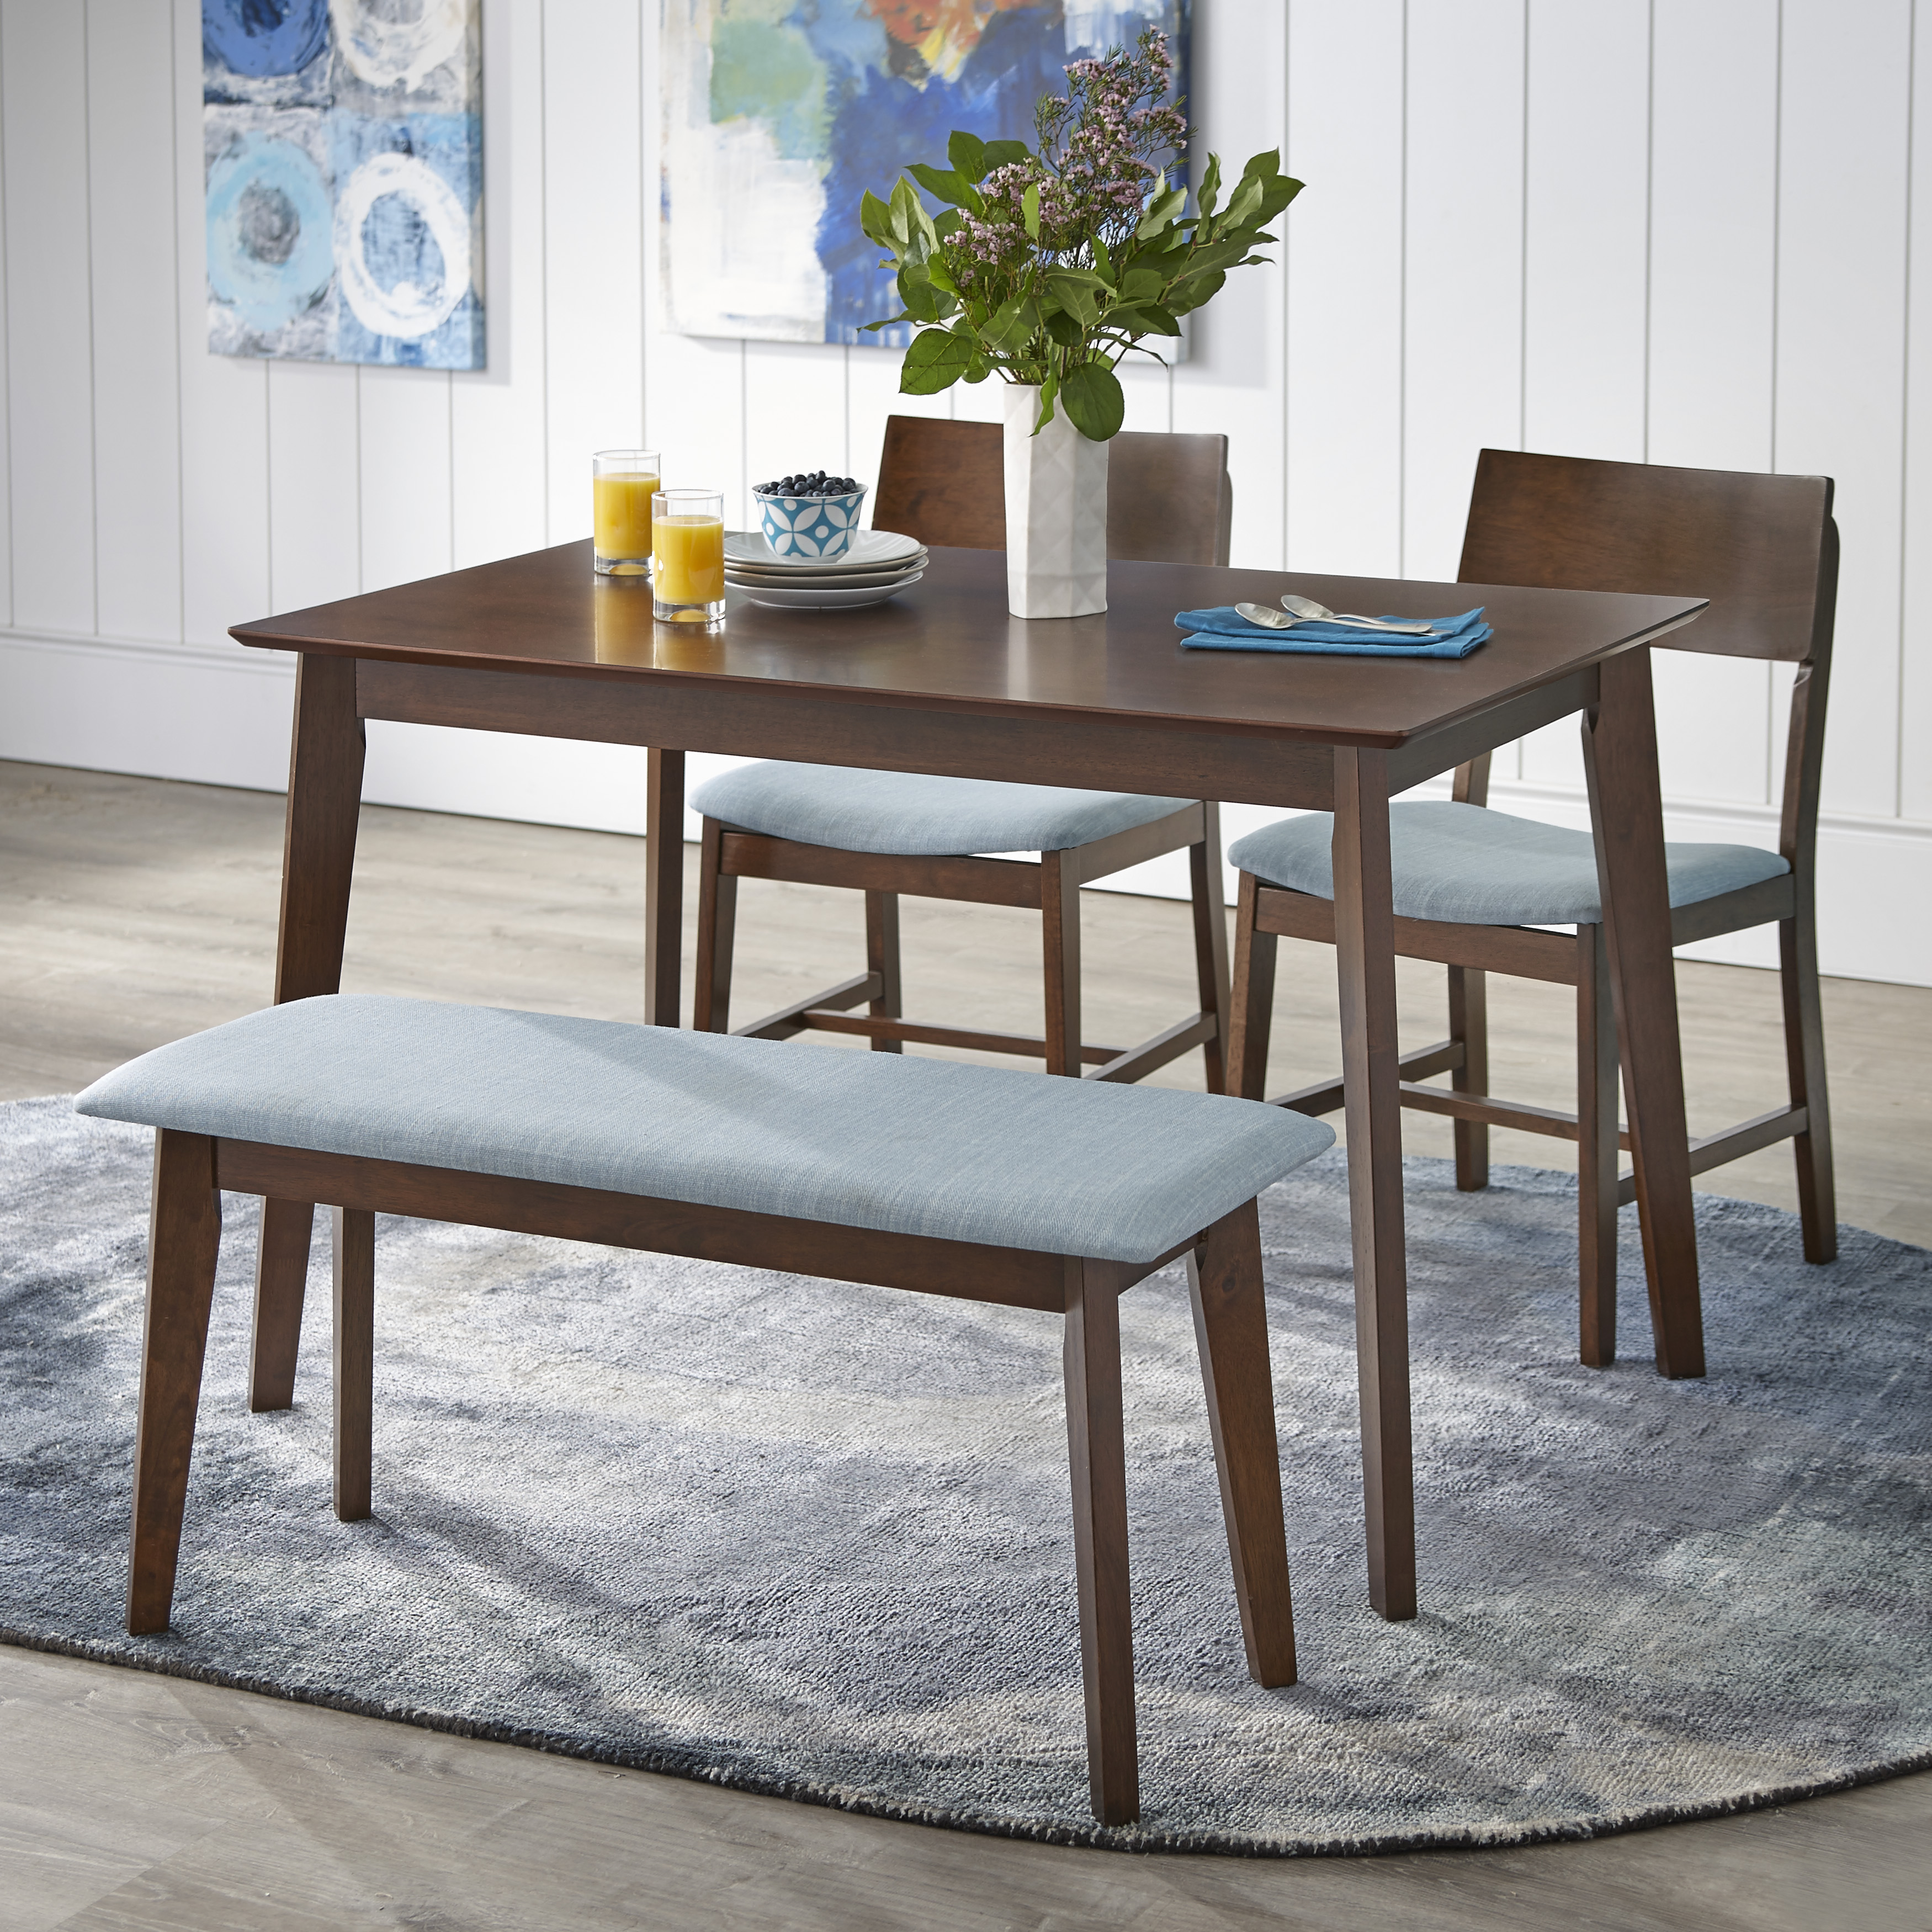 TMS Tiara 4 Piece Mid Century Dining Set with Bench, Multiple Colors